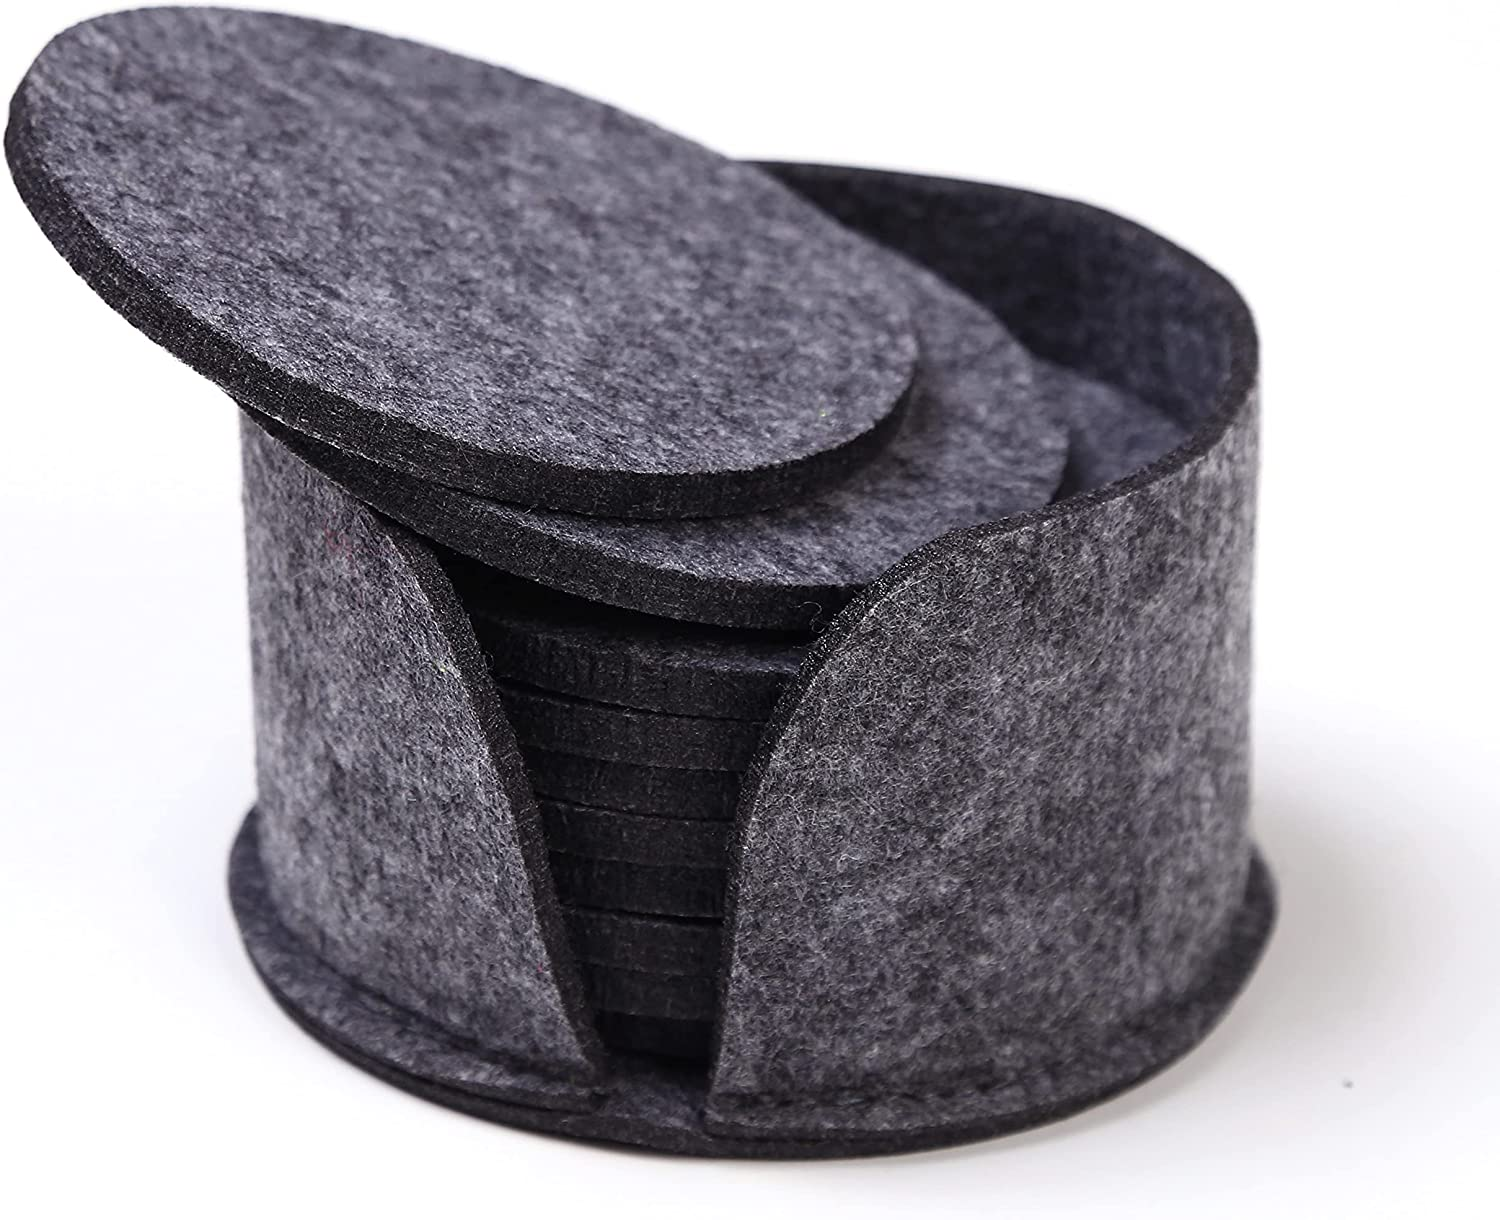 Coasters for Drinks, ReeLian Felt Fabric Coasters with Holder, Absorbent Cool Gray Coasters Set of 10, Cup Mat for Home and Bar Use